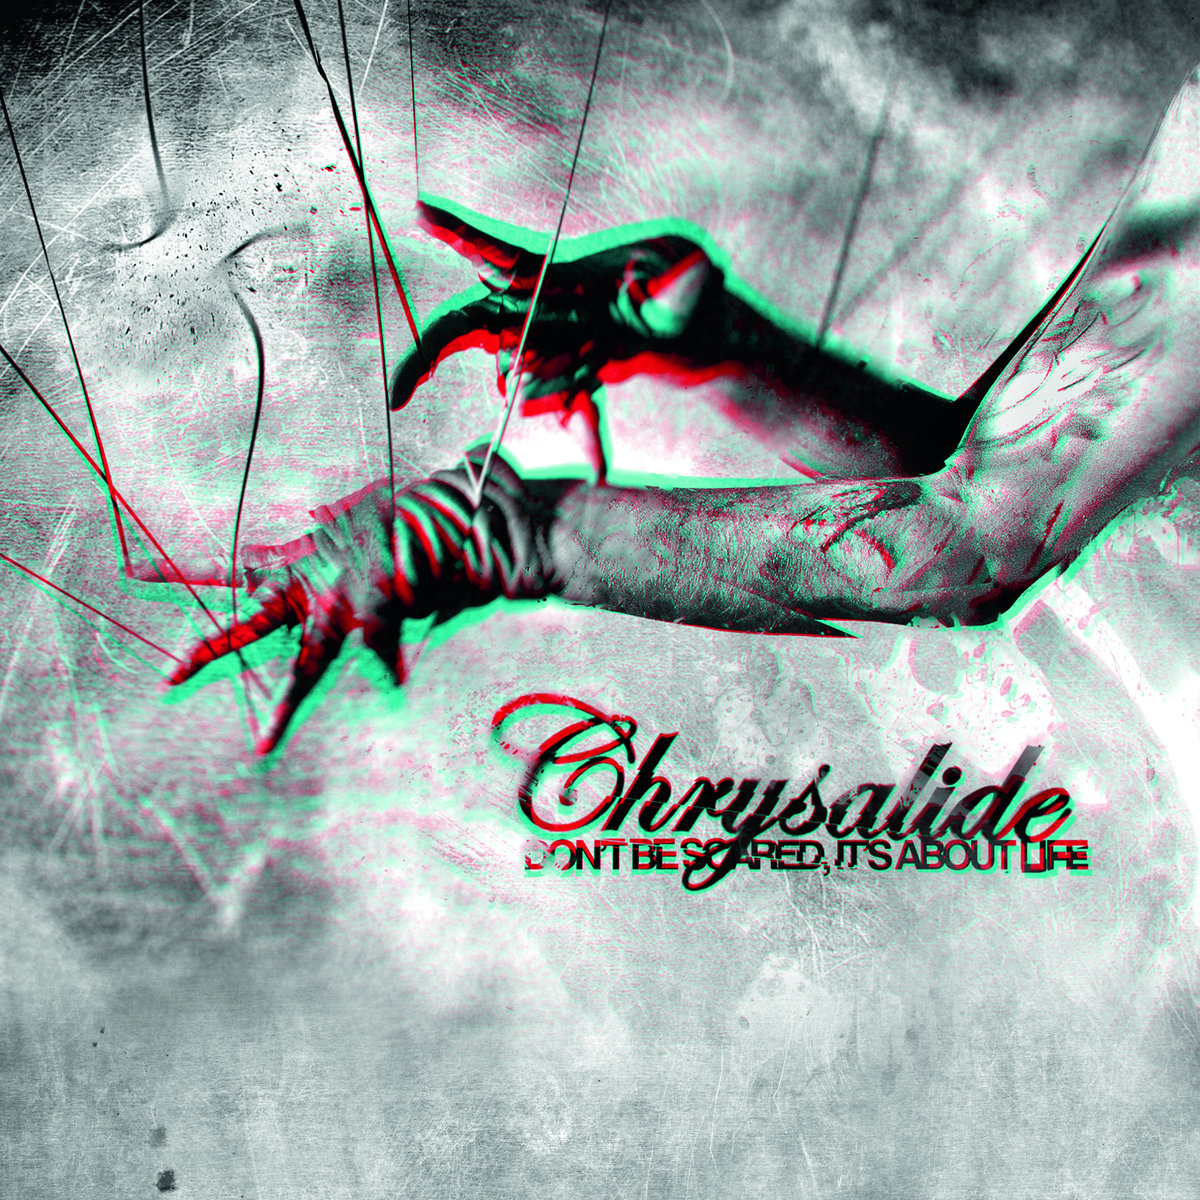 Review : Chrysalide - Don't Be Scared It's About Life(2017)